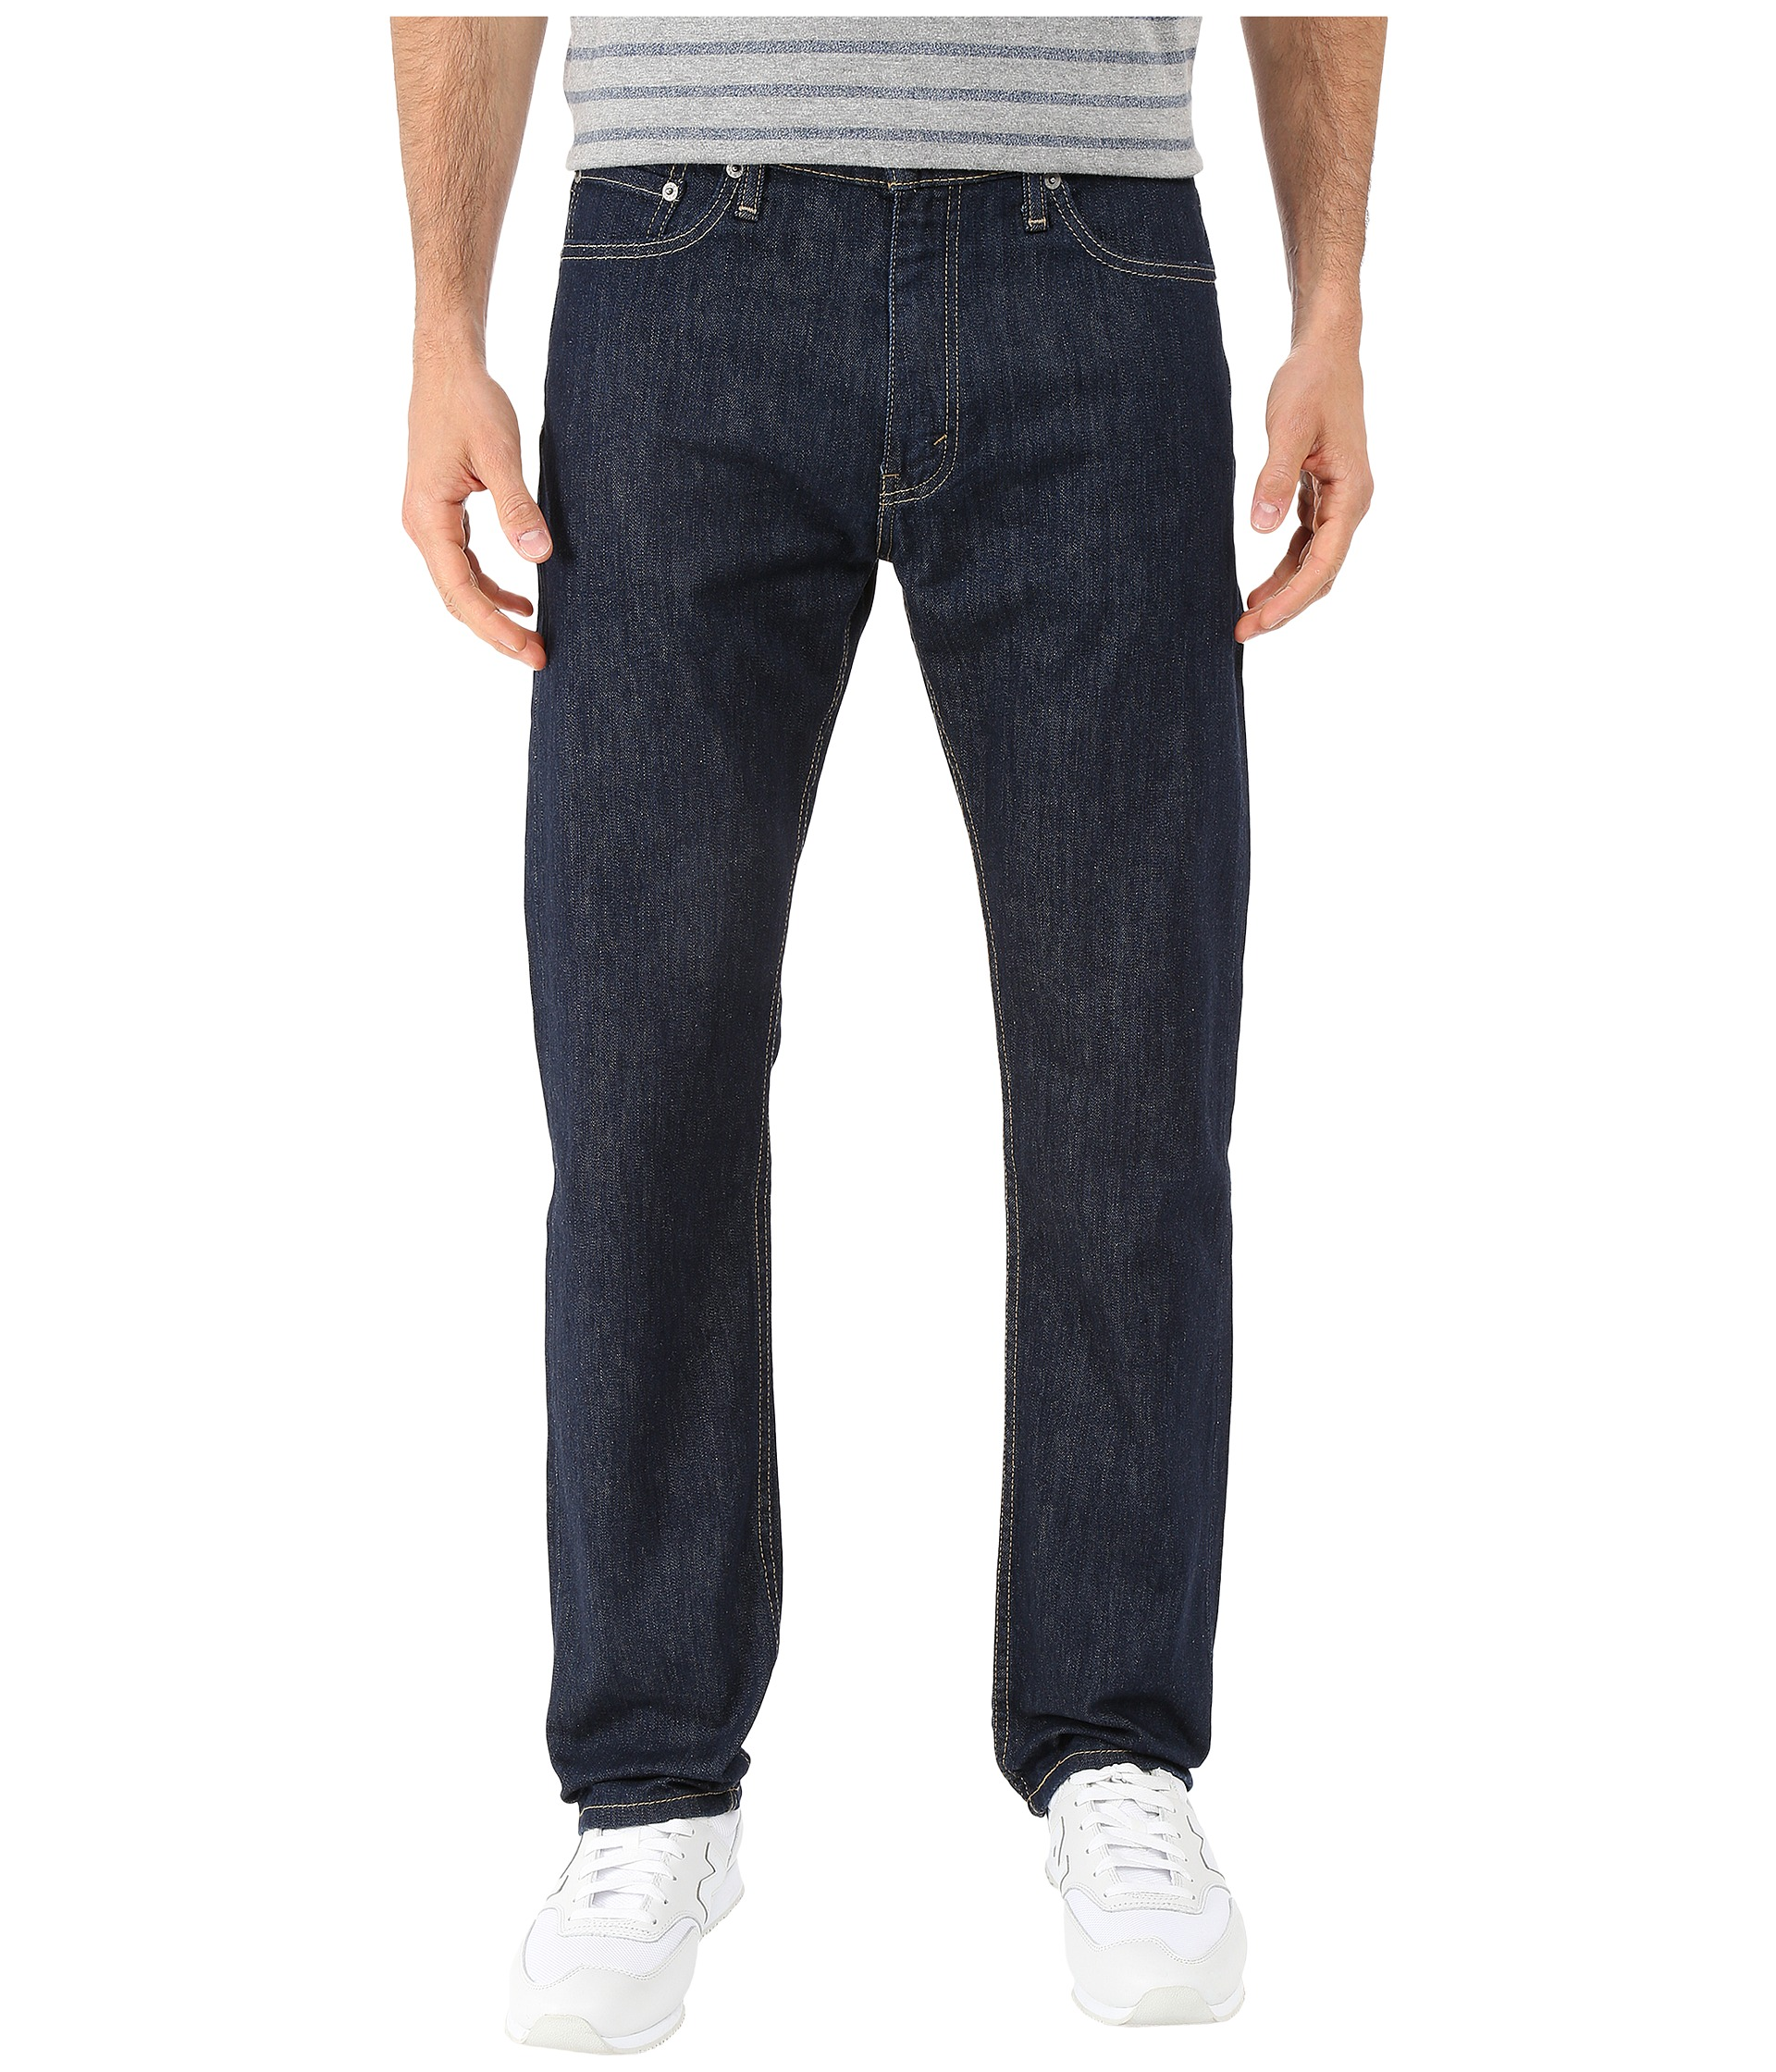 Keep it casual and cool all season in our slim-fit, straight-leg jeans from Arizona, featuring a hint of spandex for easy stretch. sits just below waist.